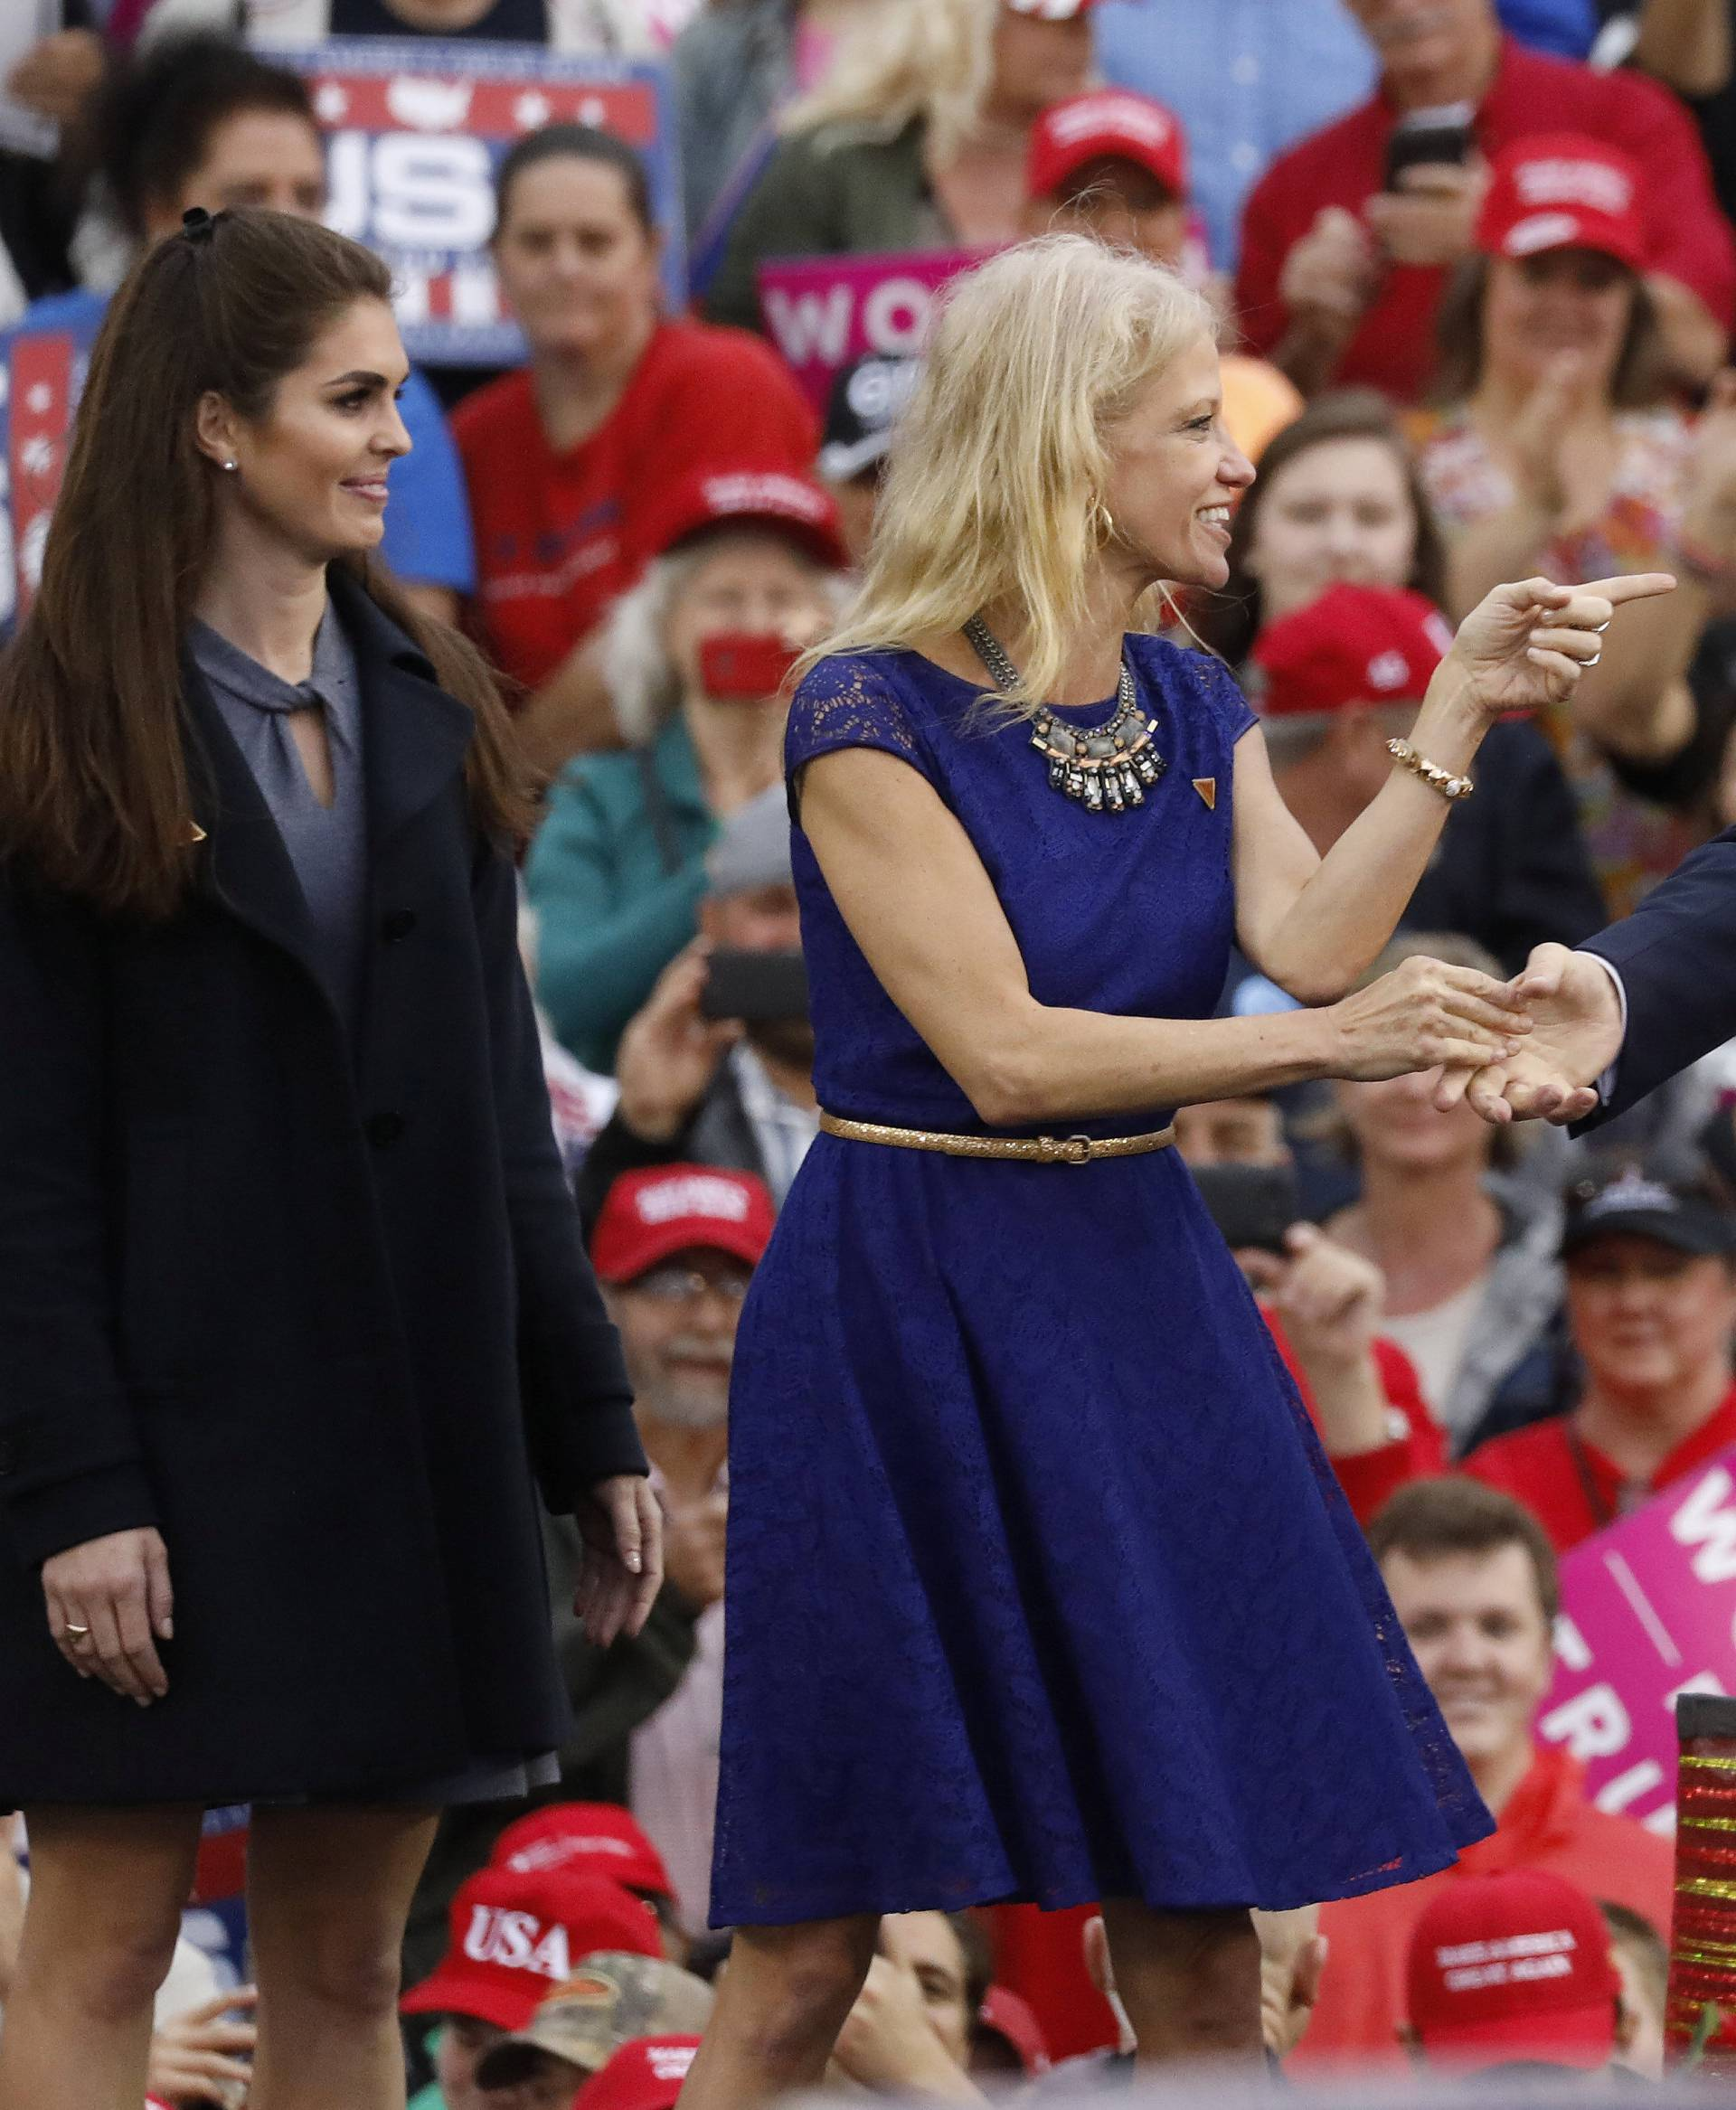 U.S. President-elect Donald Trump greets campaign manager and senior advisor, Kellyanne Conway, and Campaign Communications Director Hope Hicks during a USA Thank You Tour event in Mobile, Alabama